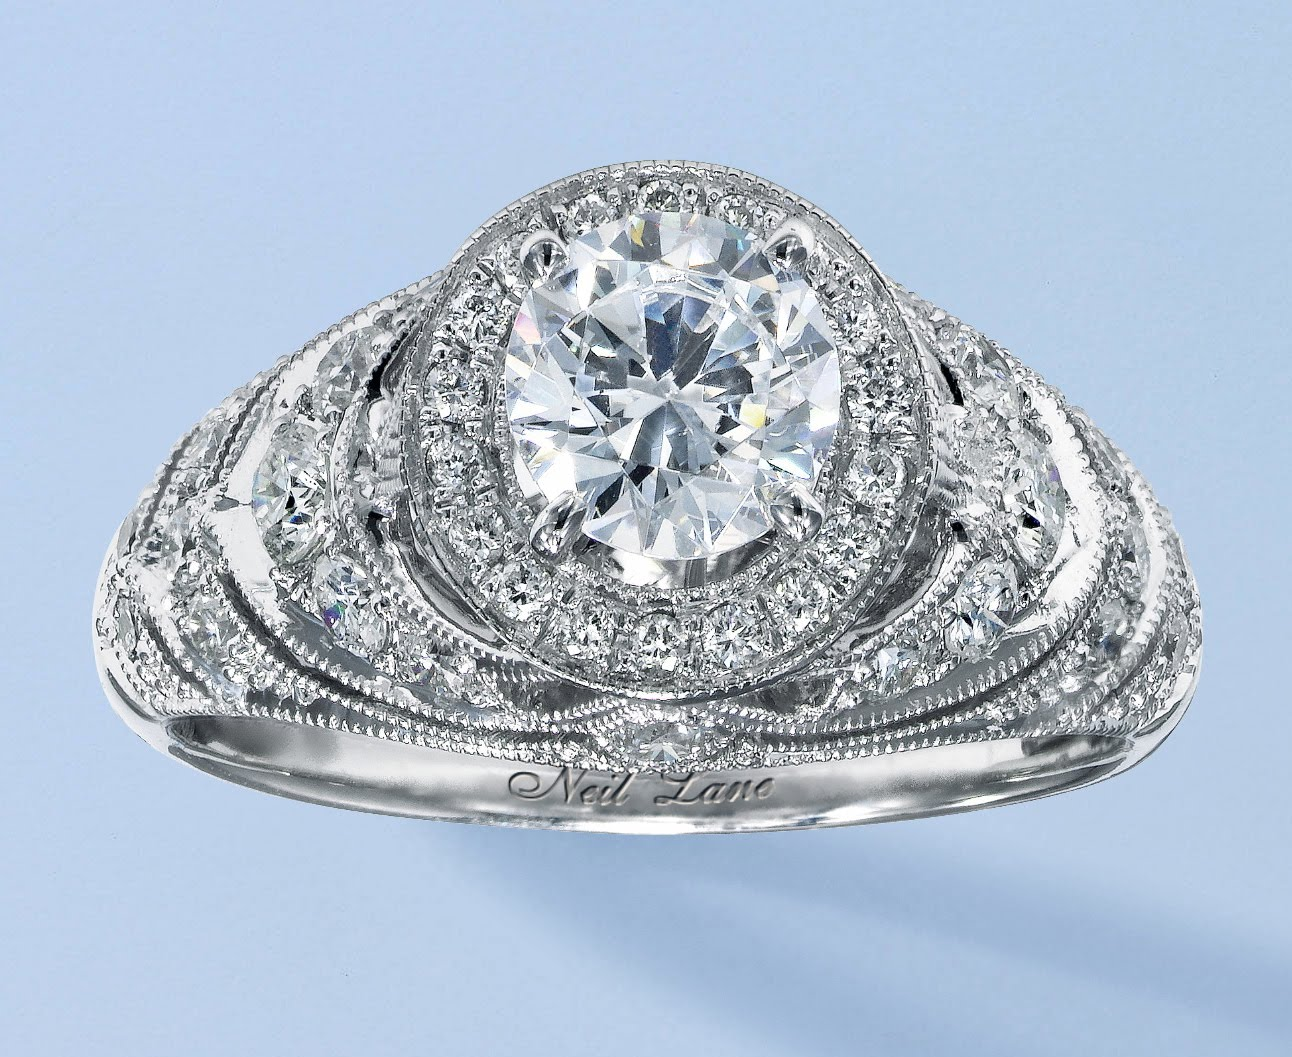 neil lane creates bridal collection for kays jewelry wedding rings Neil Lane Creates Bridal Collection for Kay Jewelers